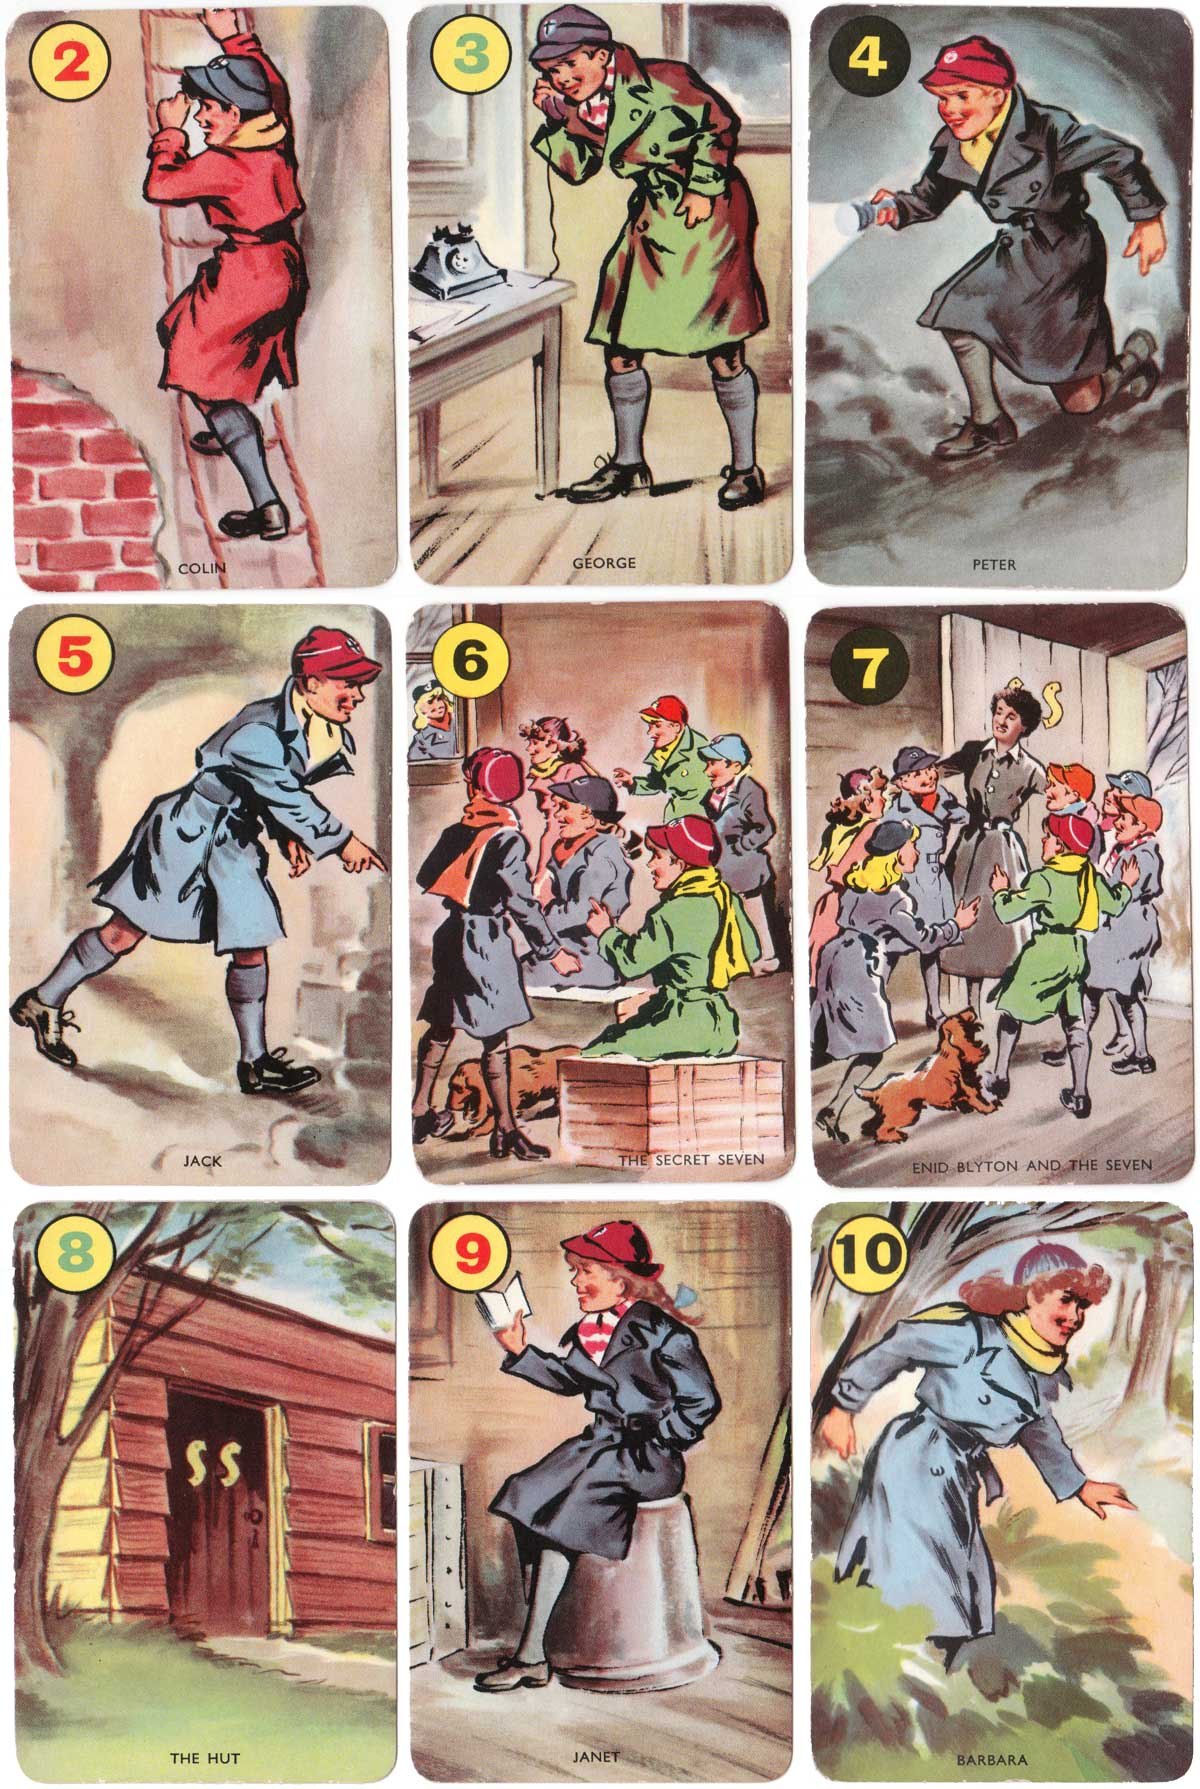 Secret Seven card game by Pepys, 1955